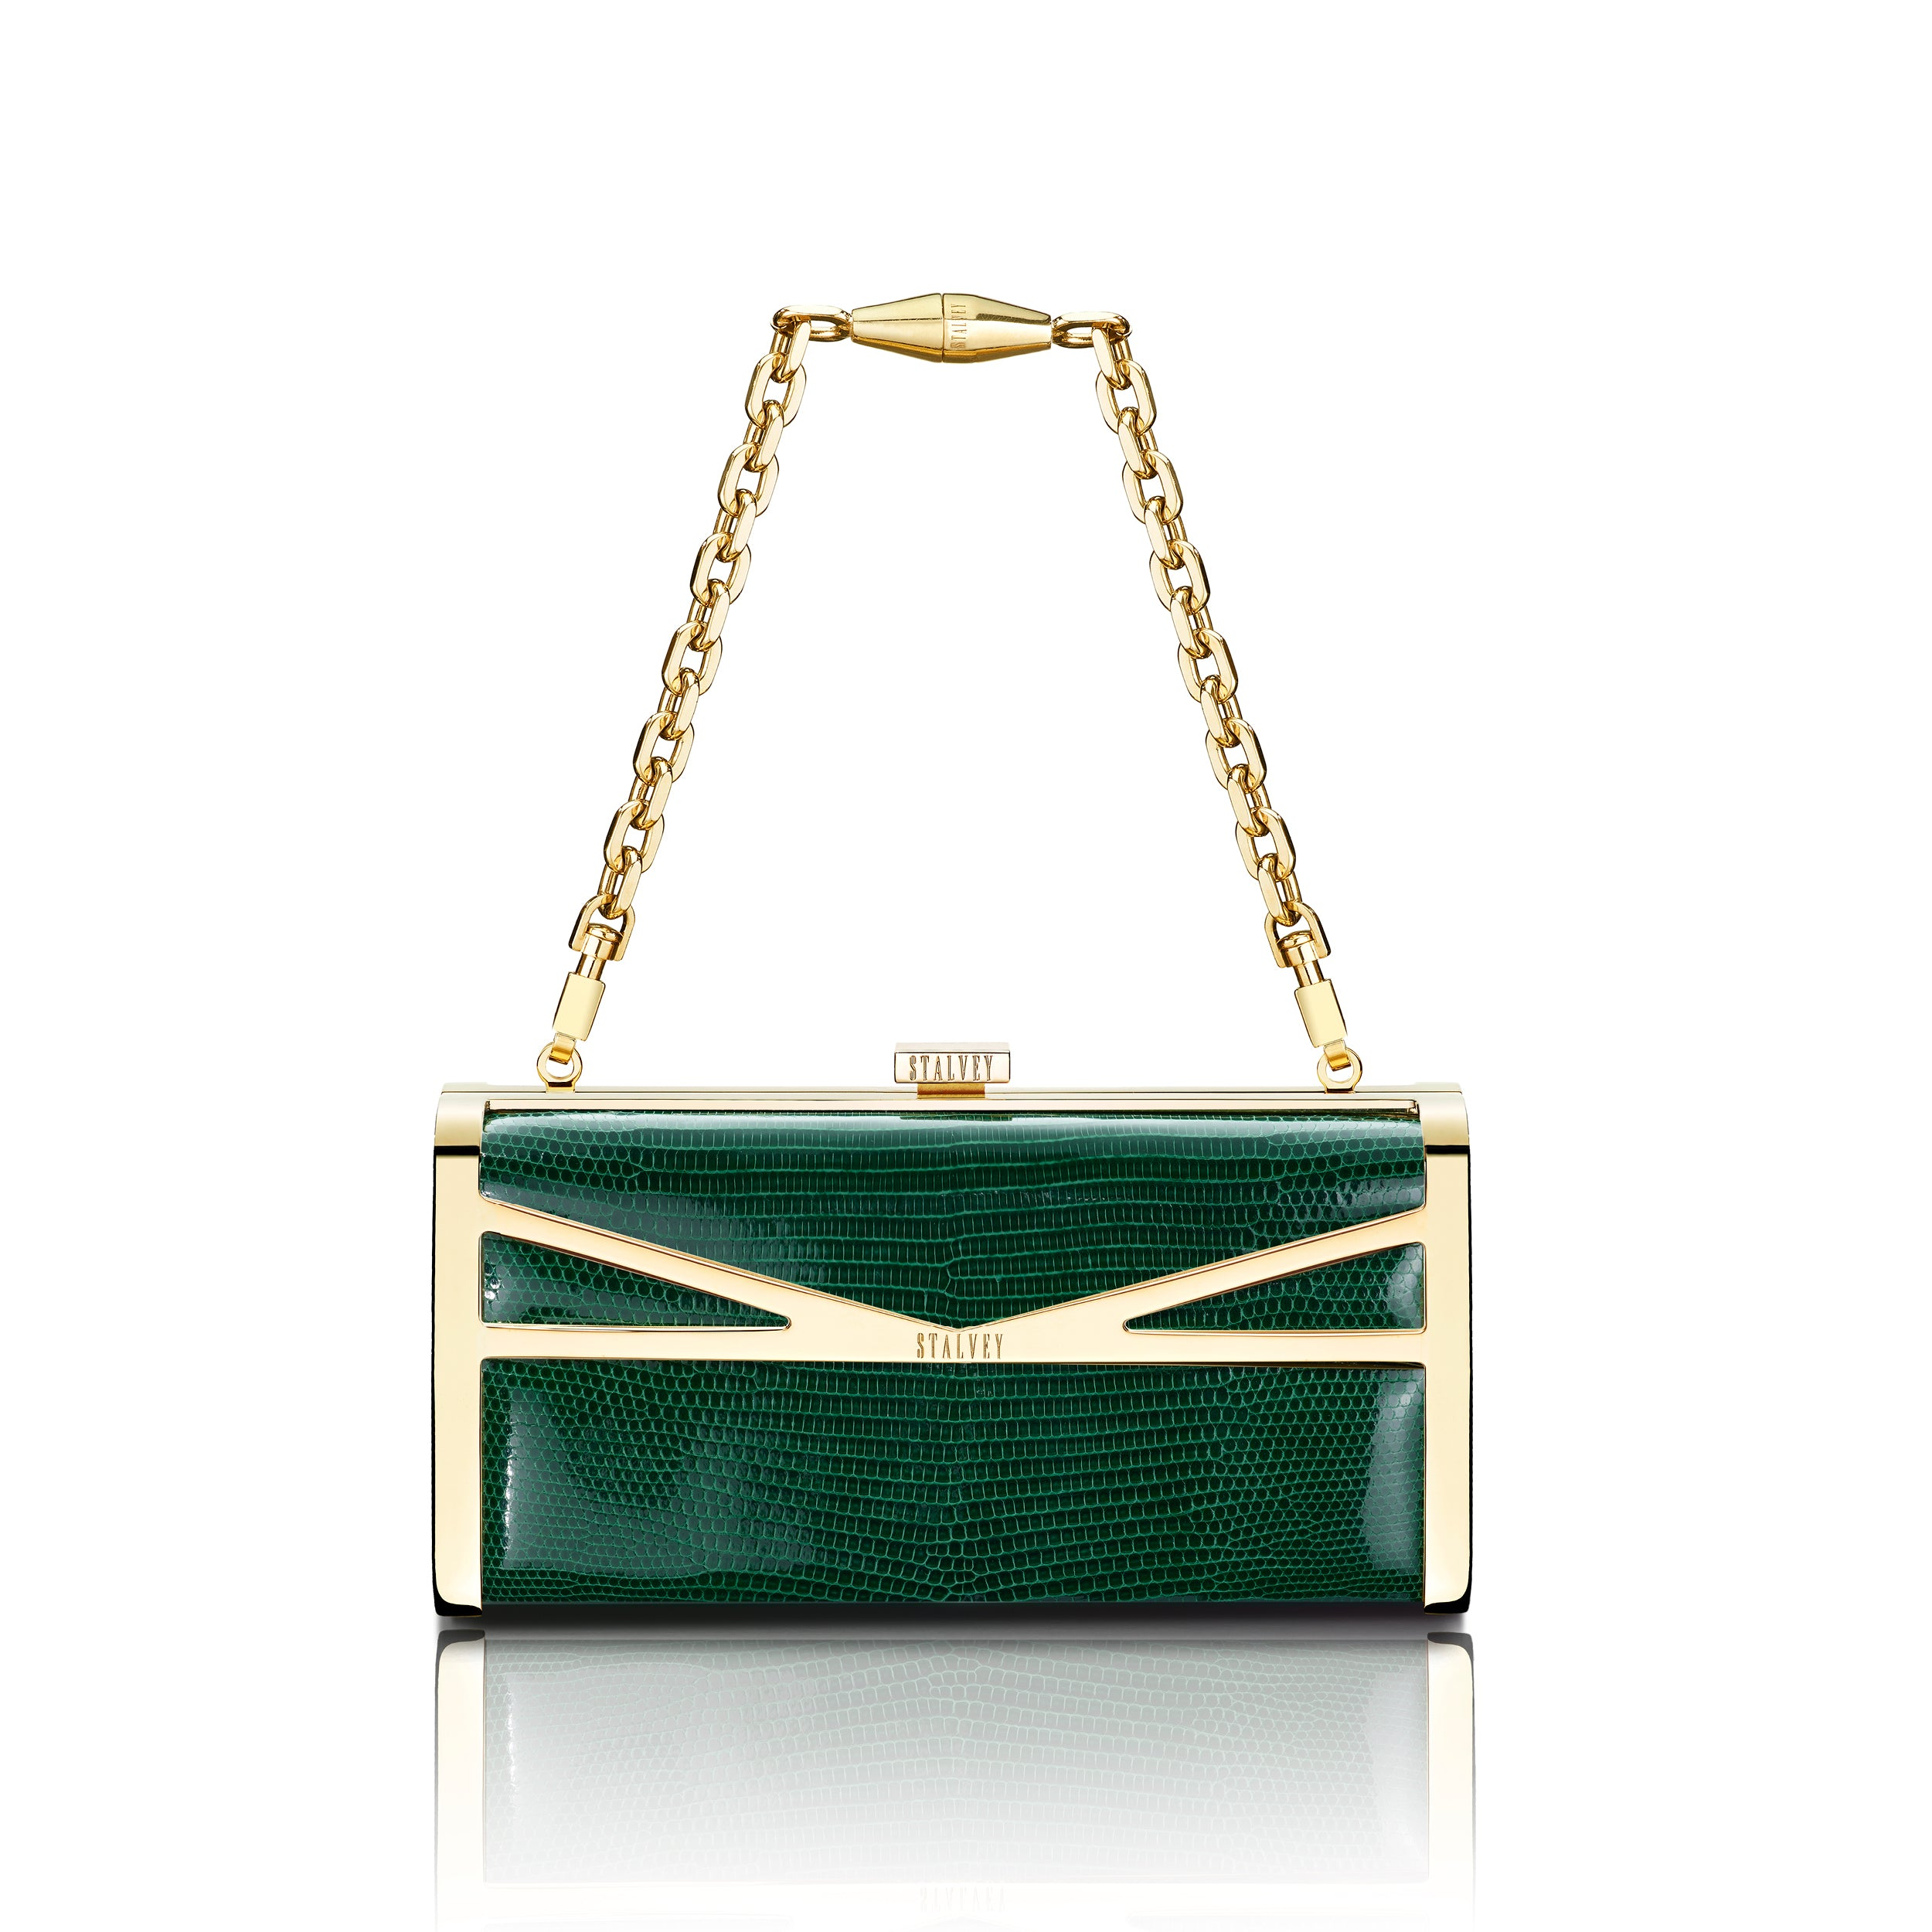 Square Clutch - Emerald Green Lizard